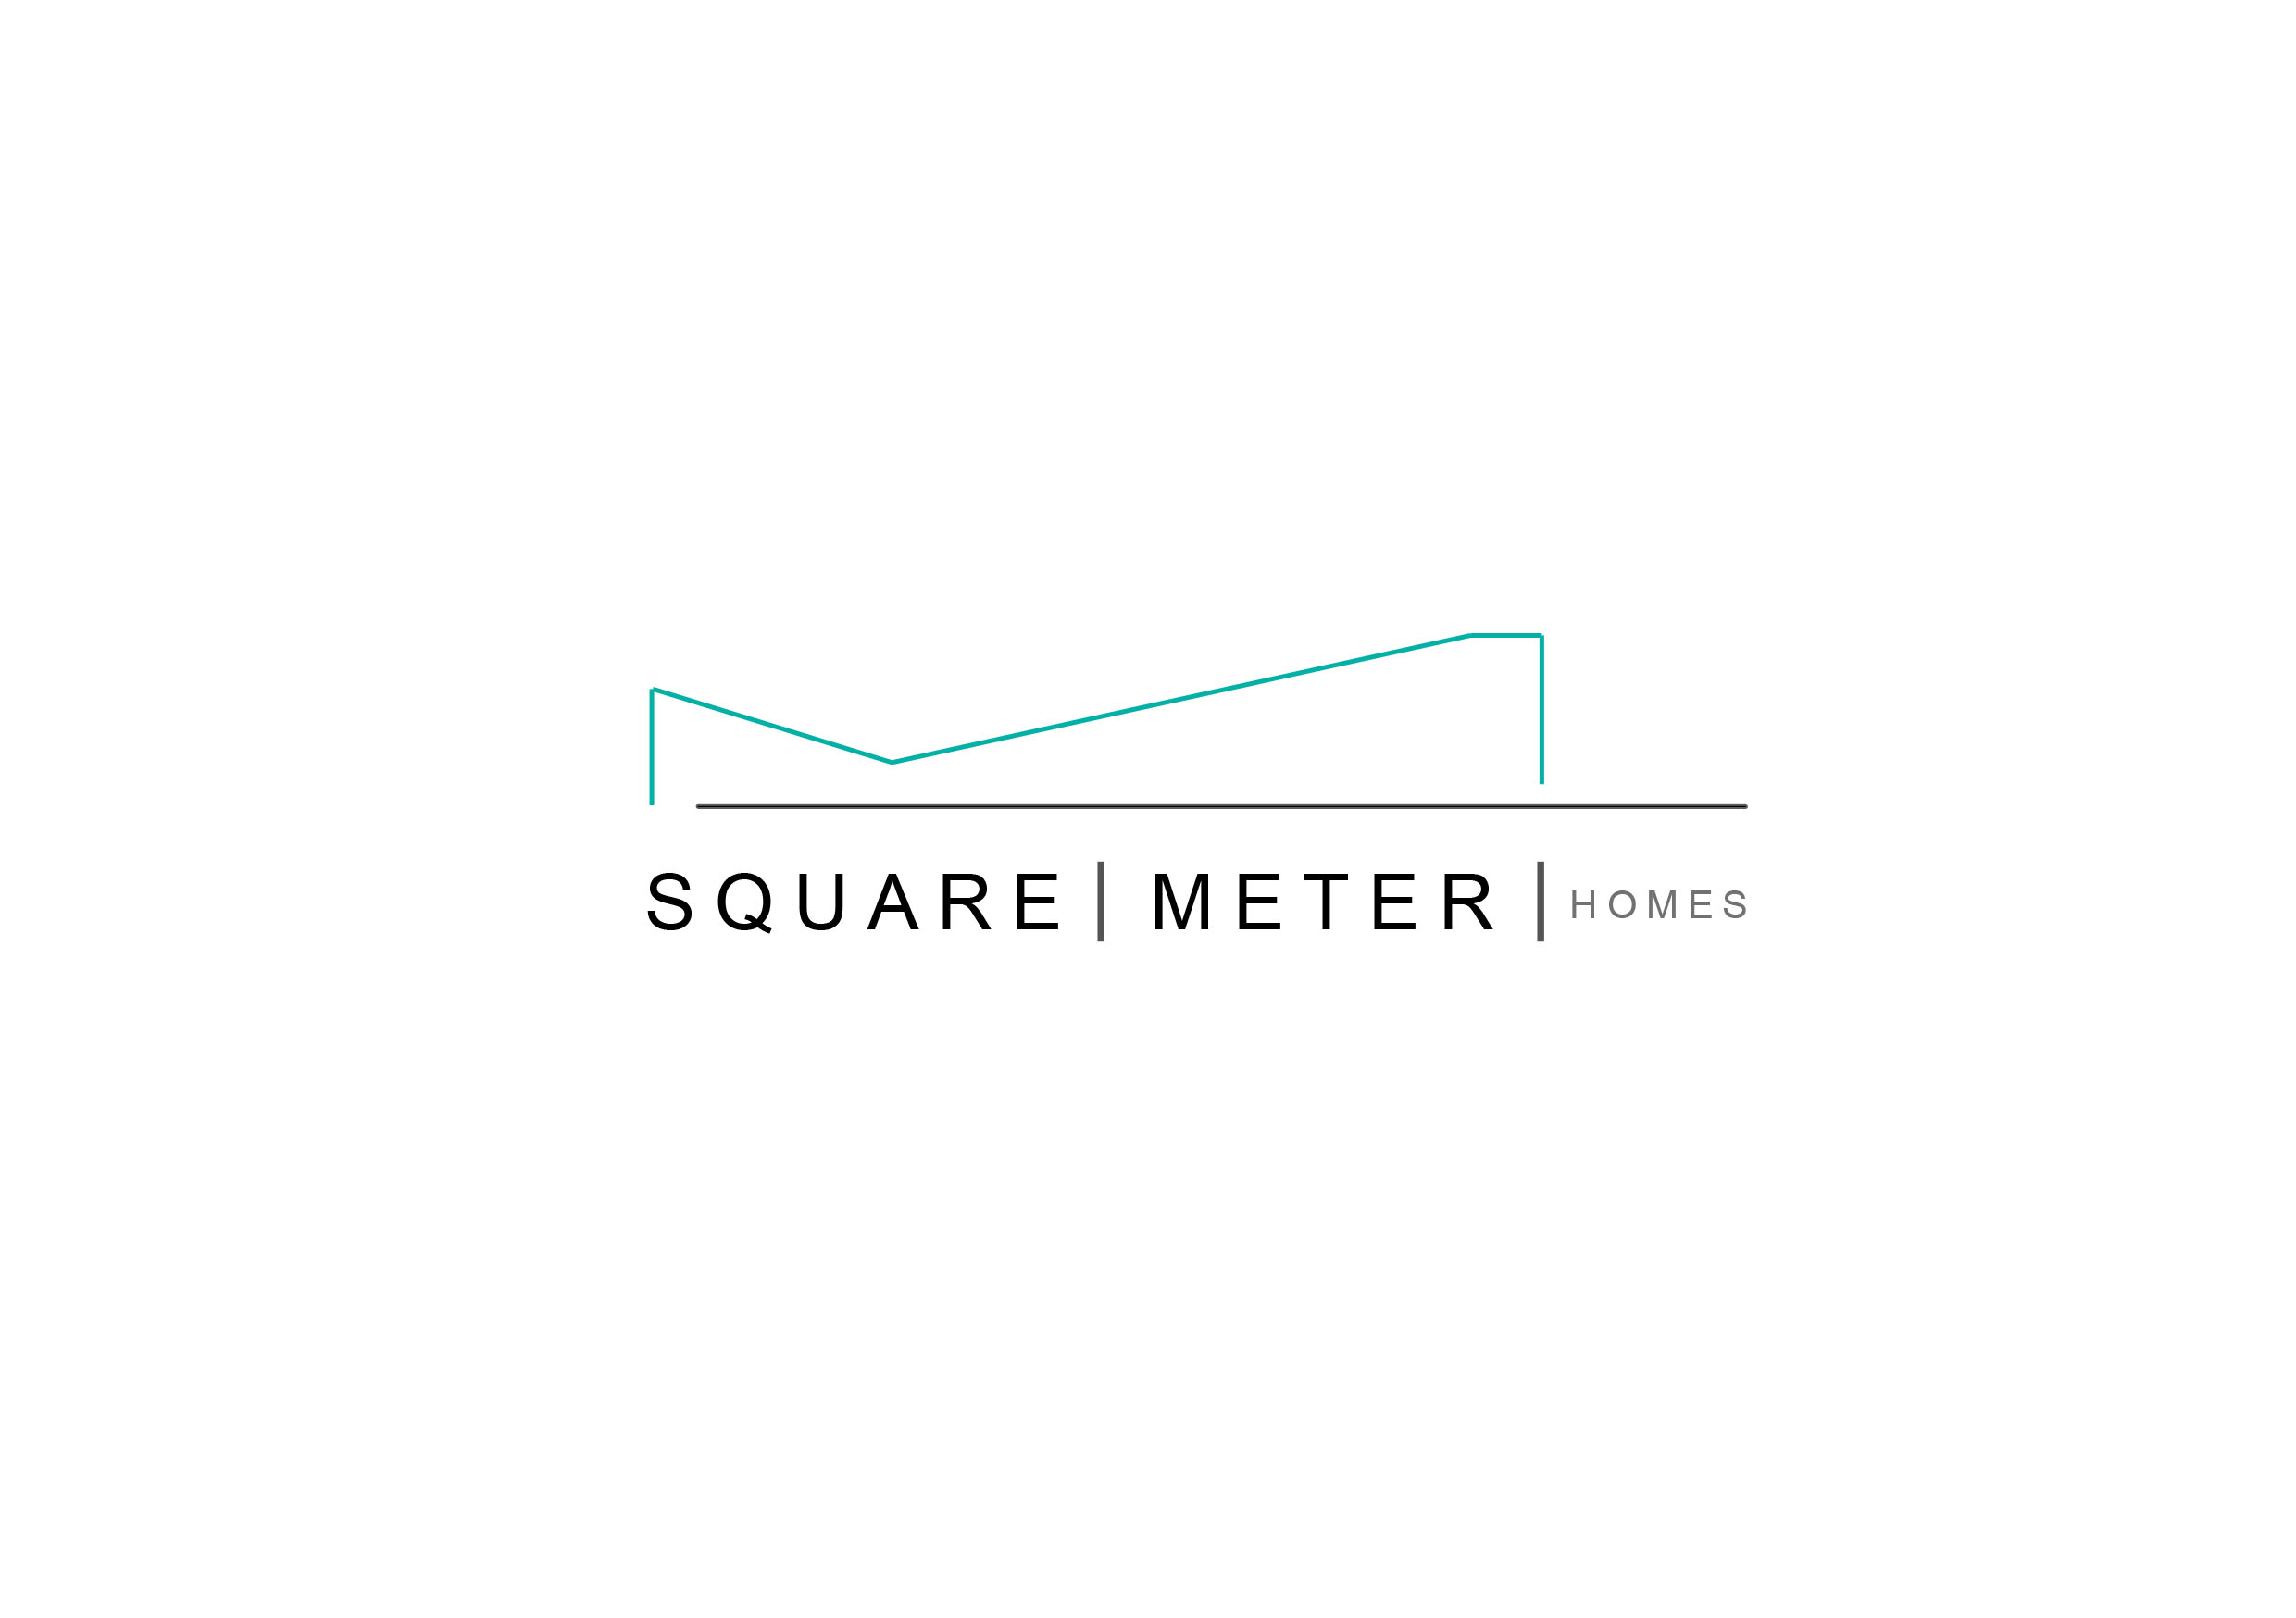 Square Meter Homes